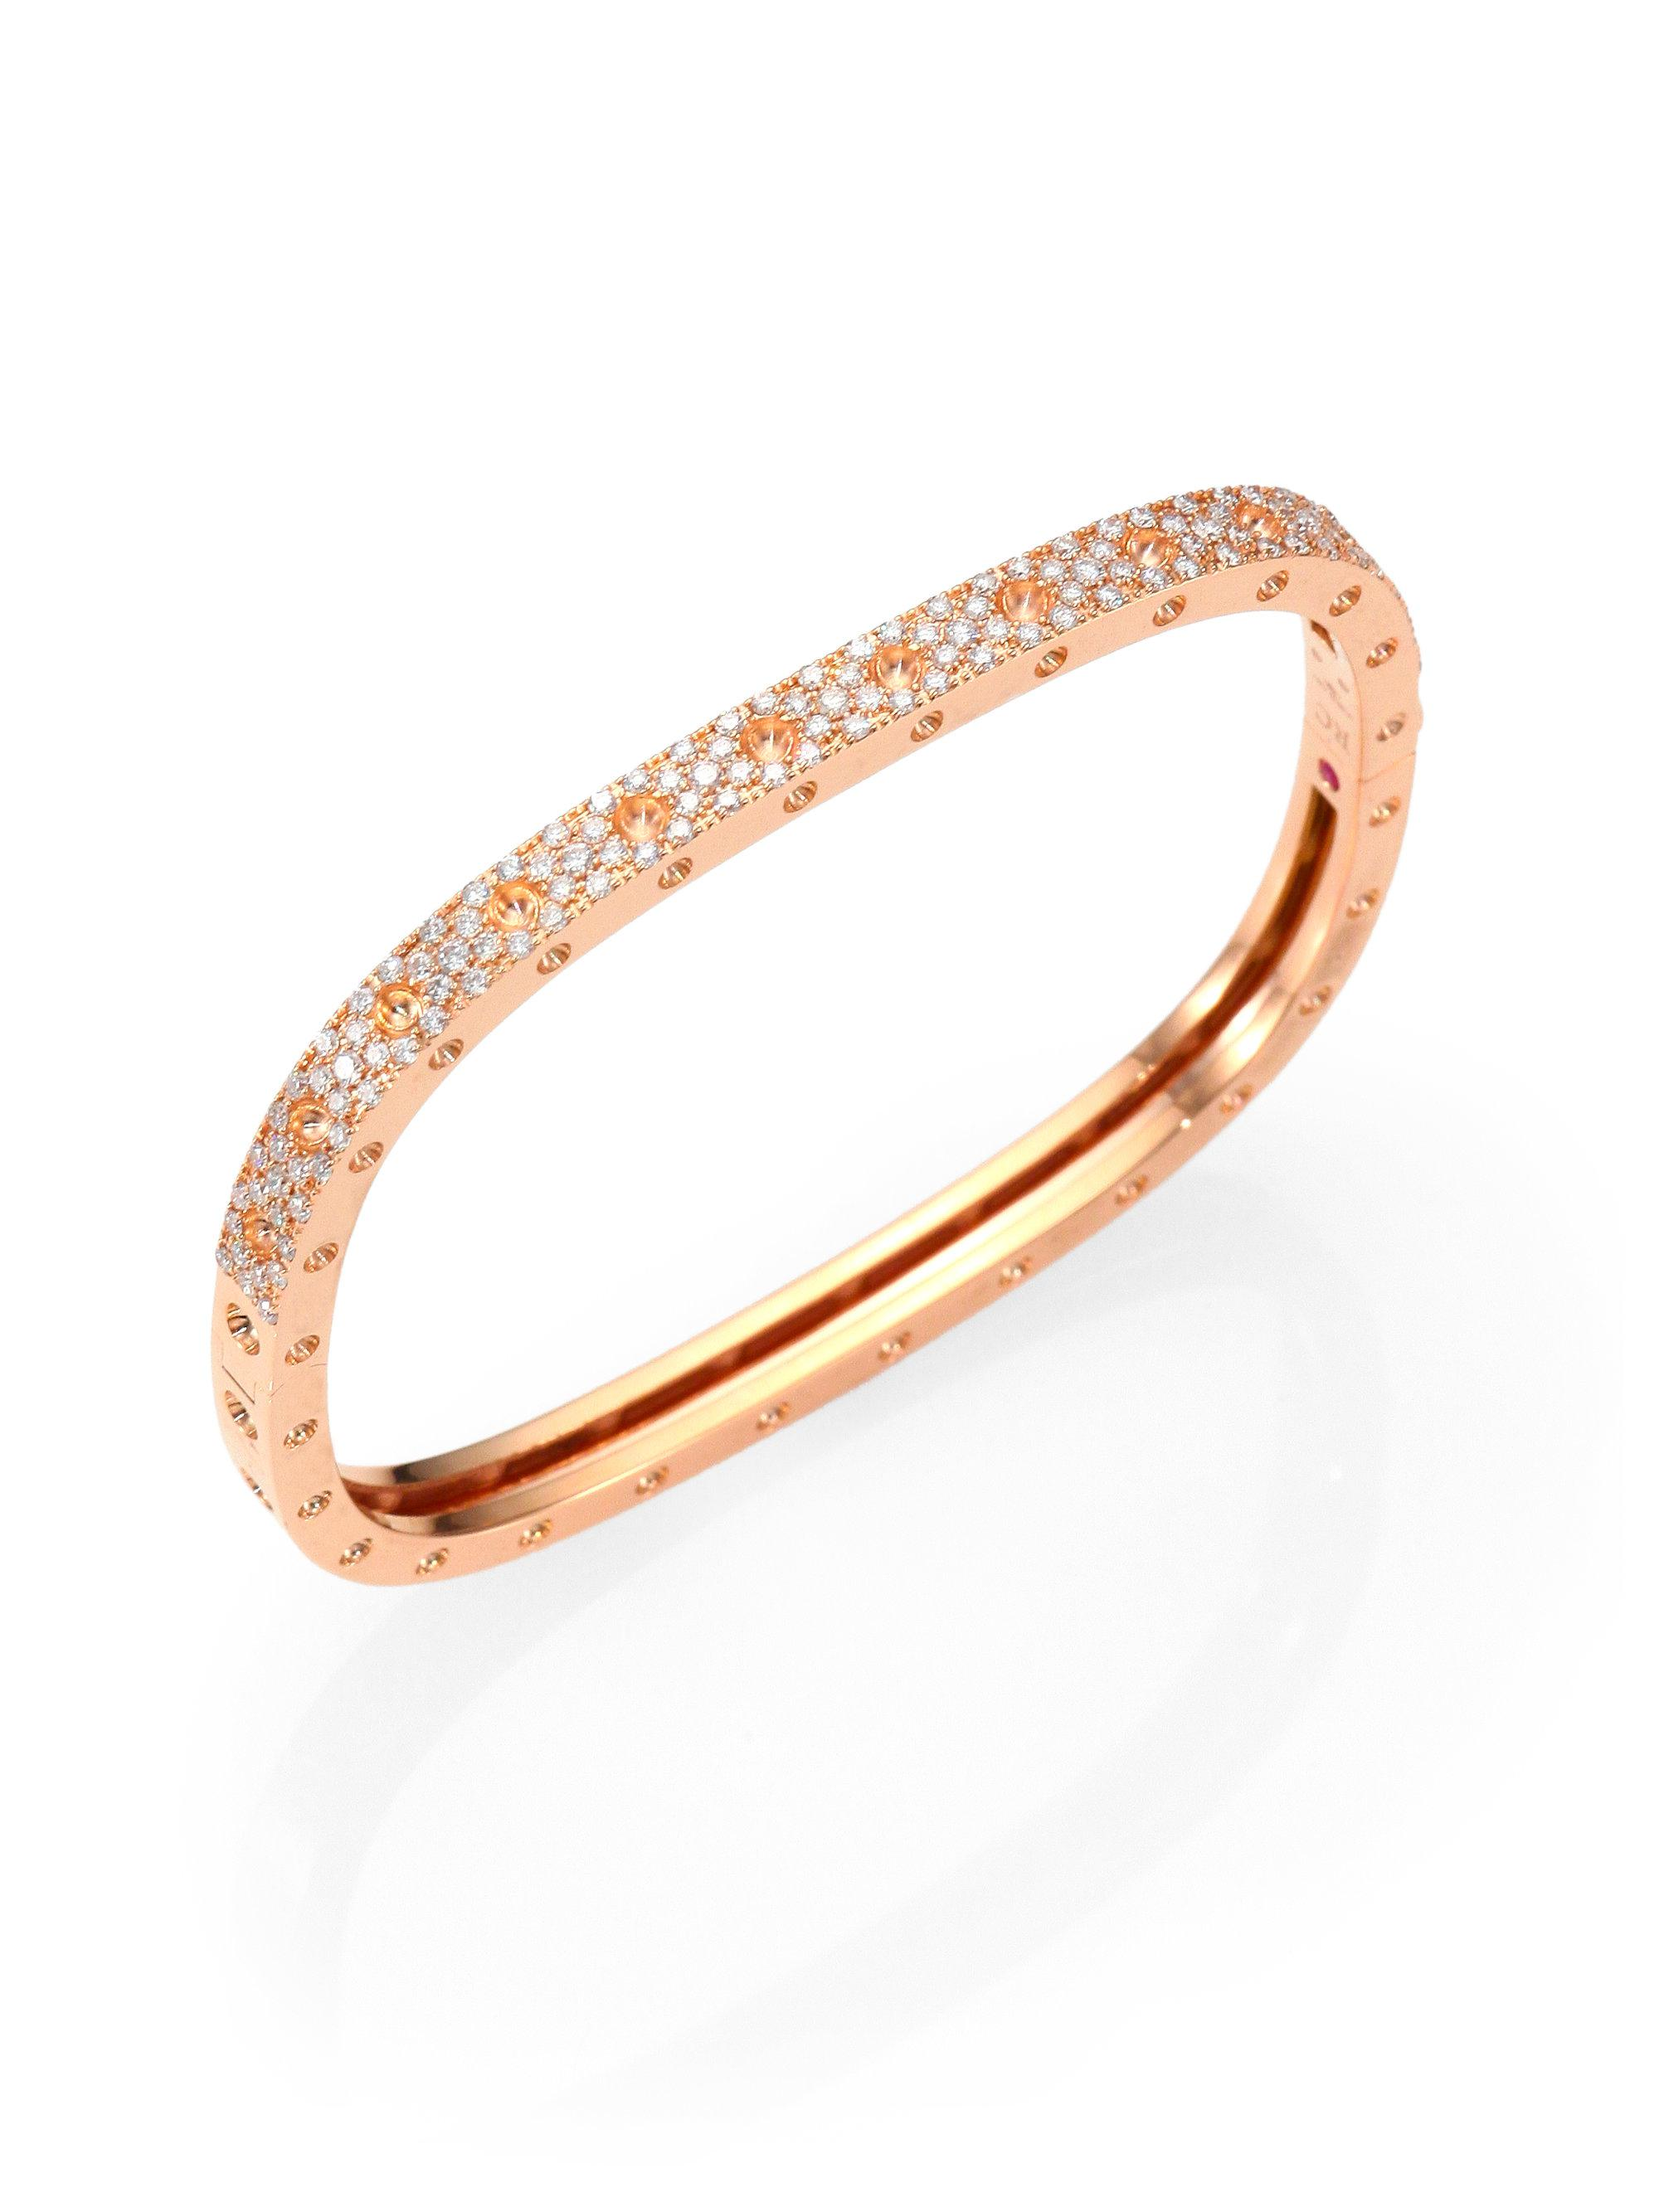 gold bar bangle rose curved yellow batch pave bangles diamond necklace pav rivoir linear resizedtf